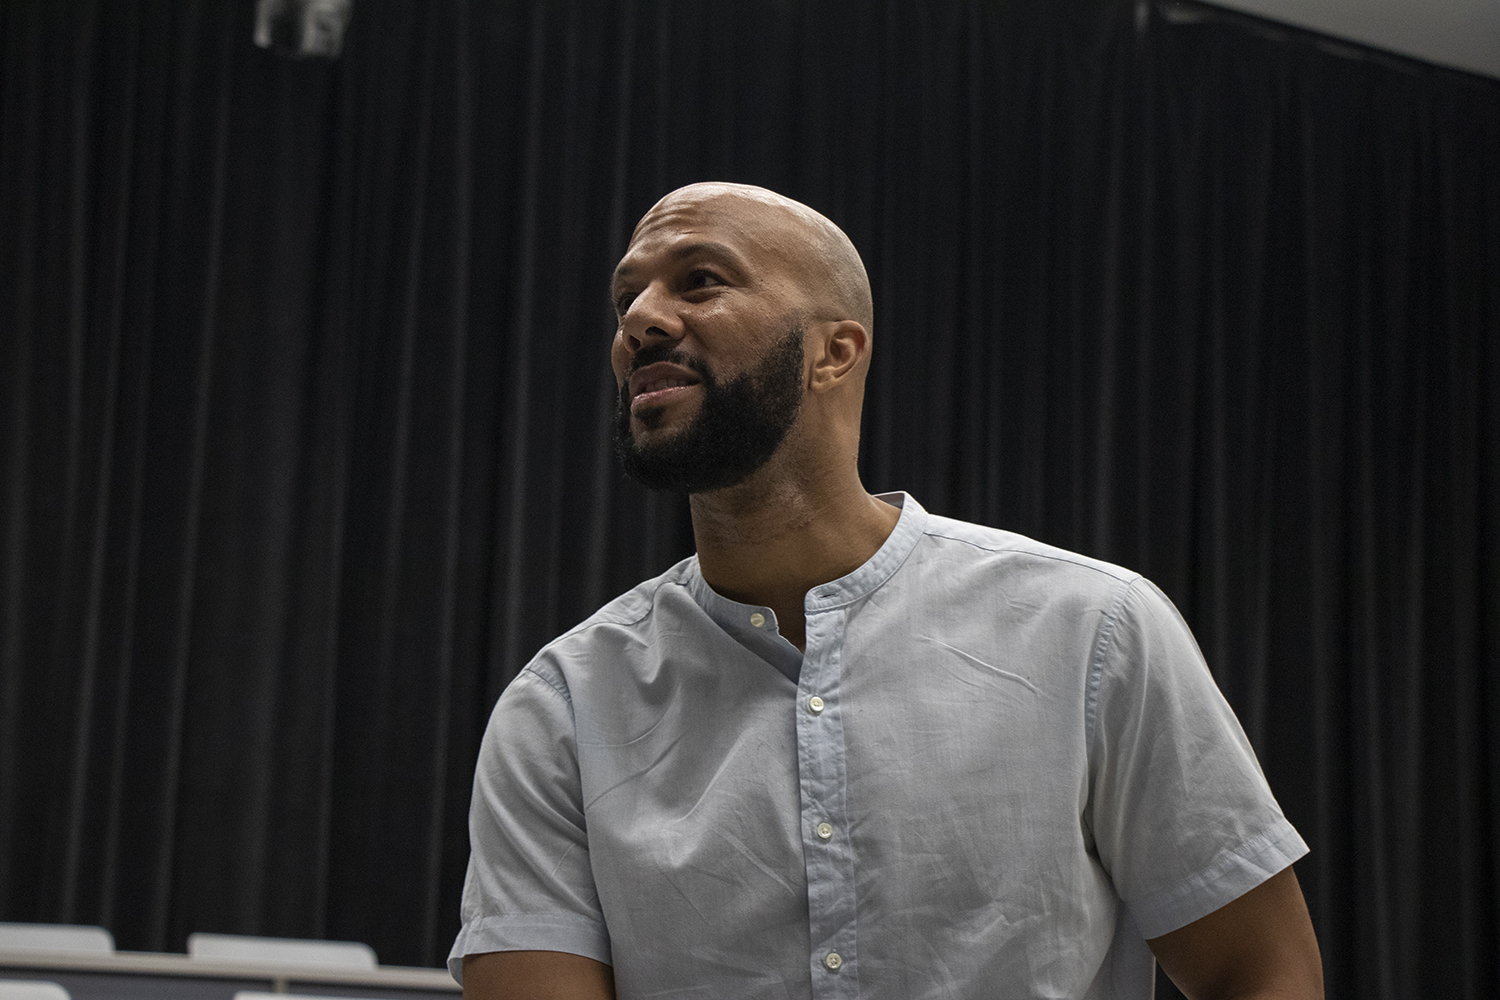 Music artist Common addresses members of the media during a Meet and Greet at the Voxman Music Building in Iowa City on Oct. 6, 2018. The meet and greet, organized by AFRO house, gave African-American students the opportunity to talk with Common about his successes and struggles.